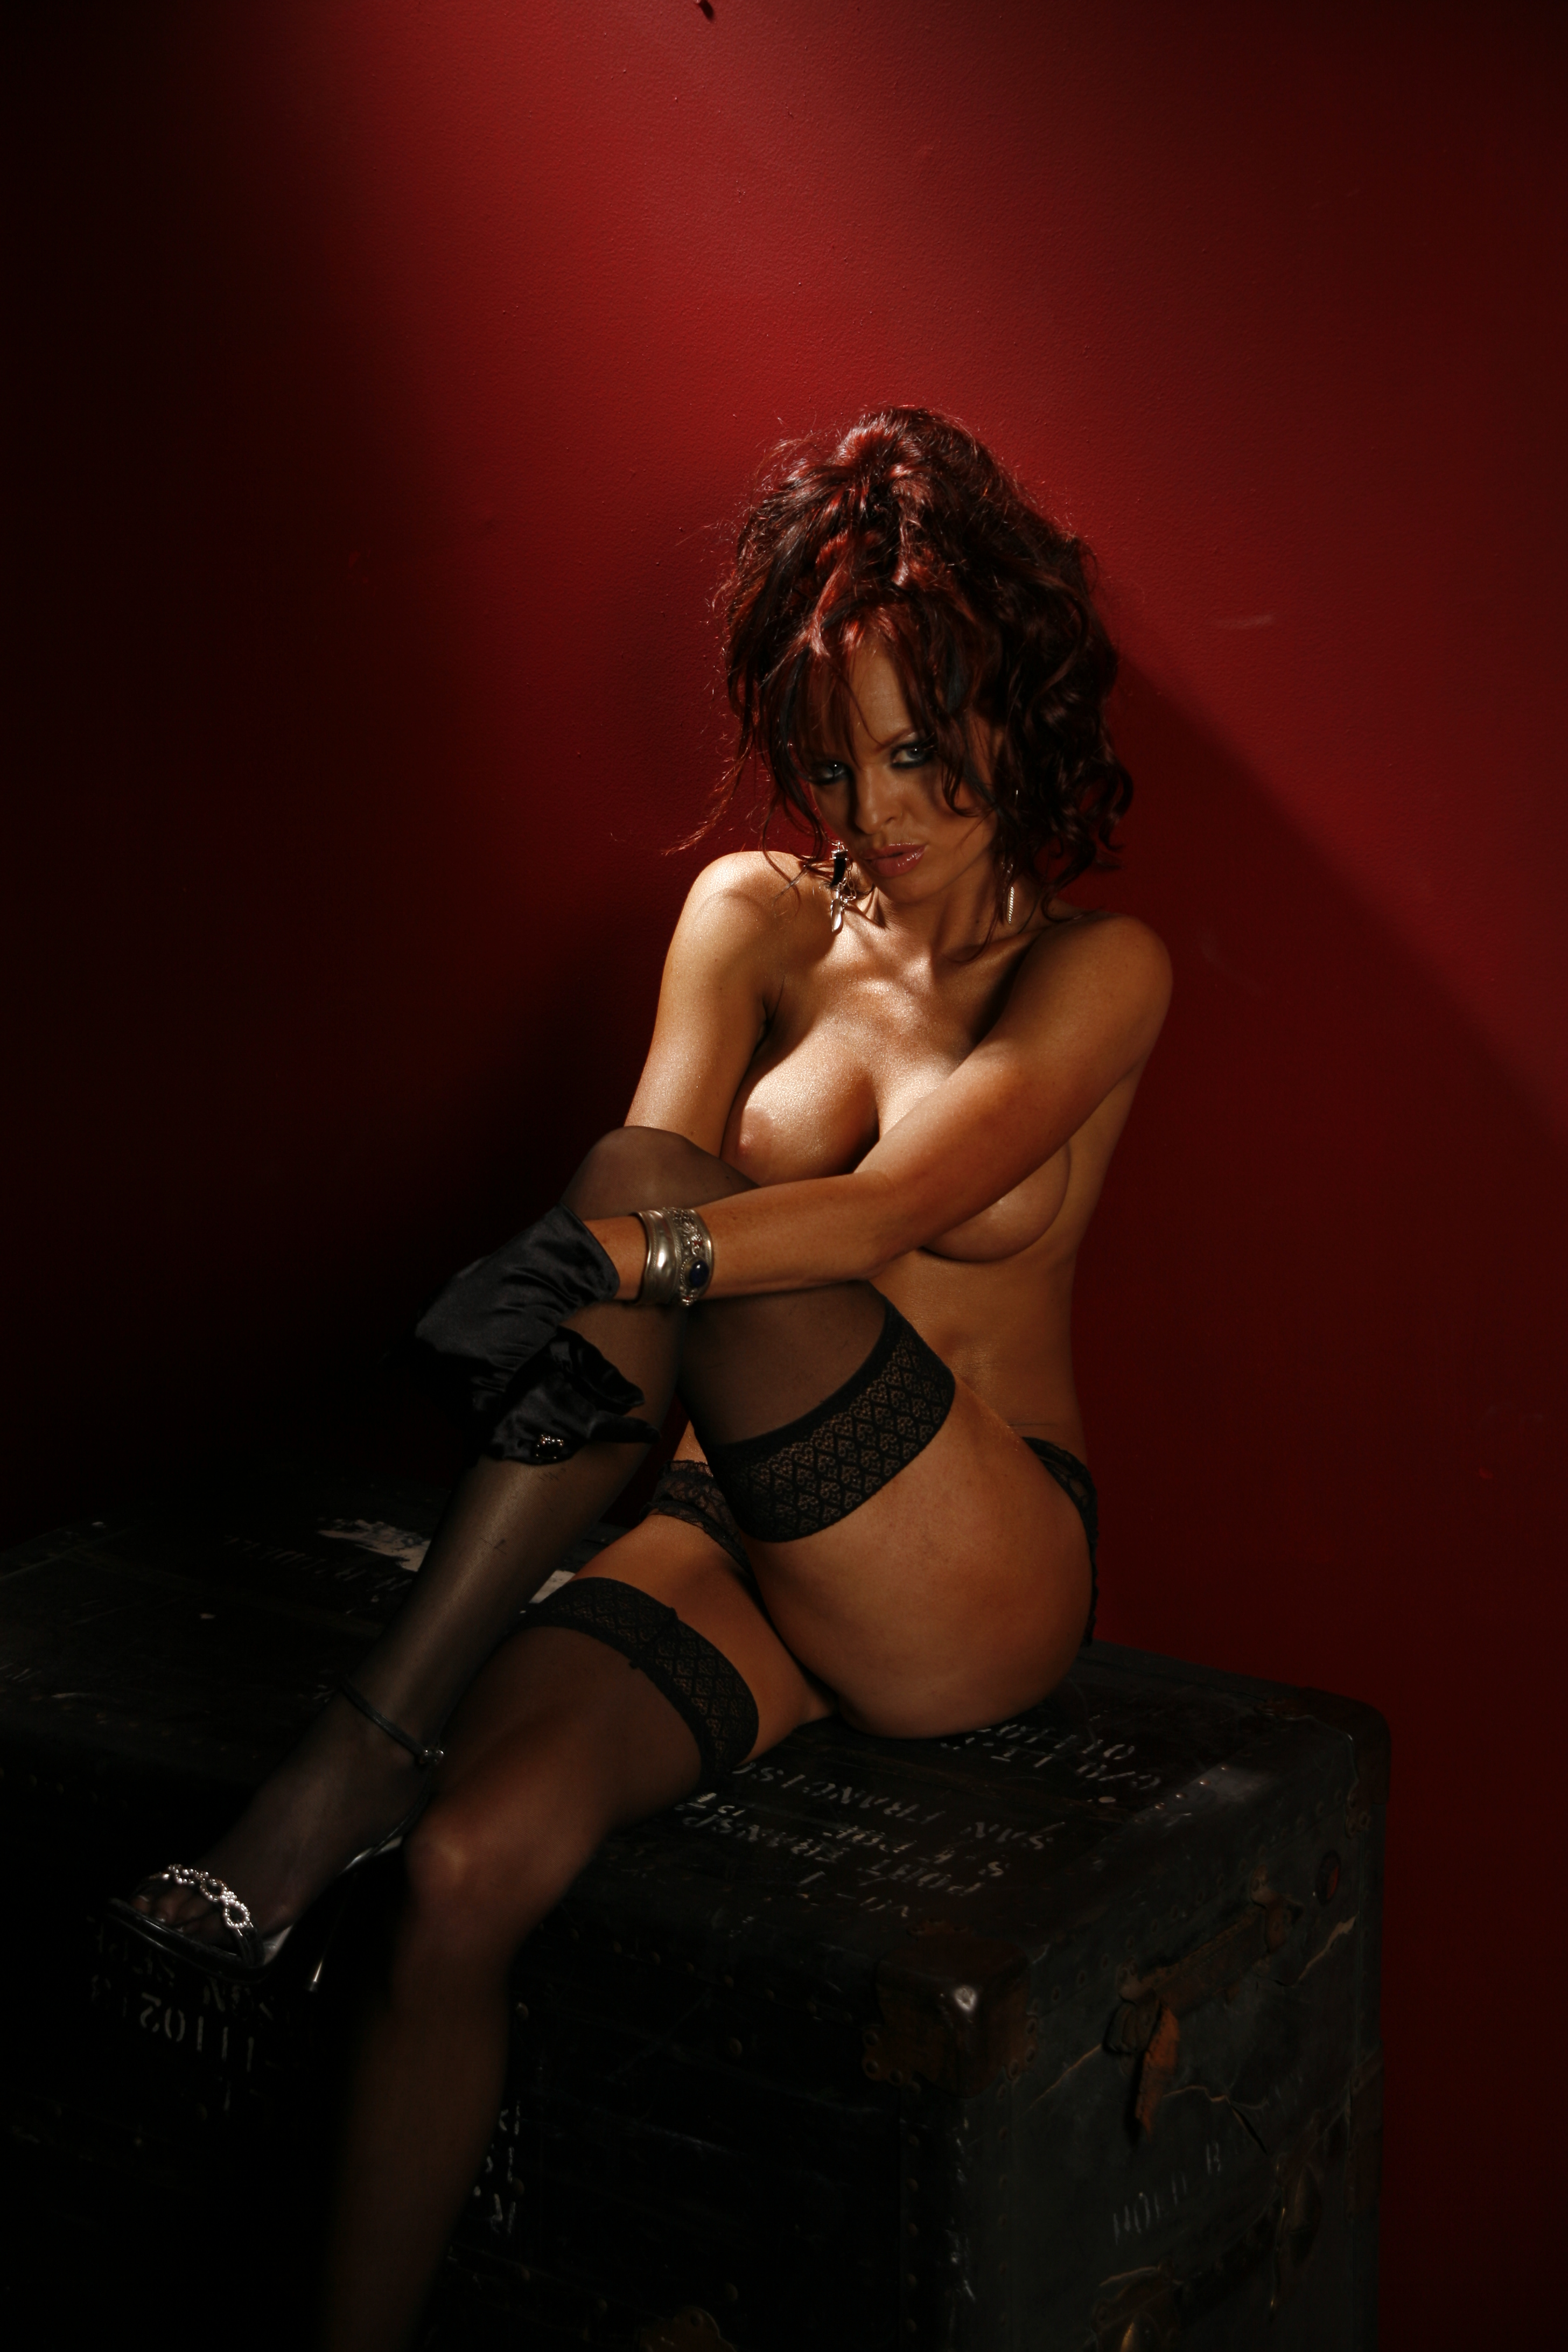 Congratulate, naked christy hemme consider, that you